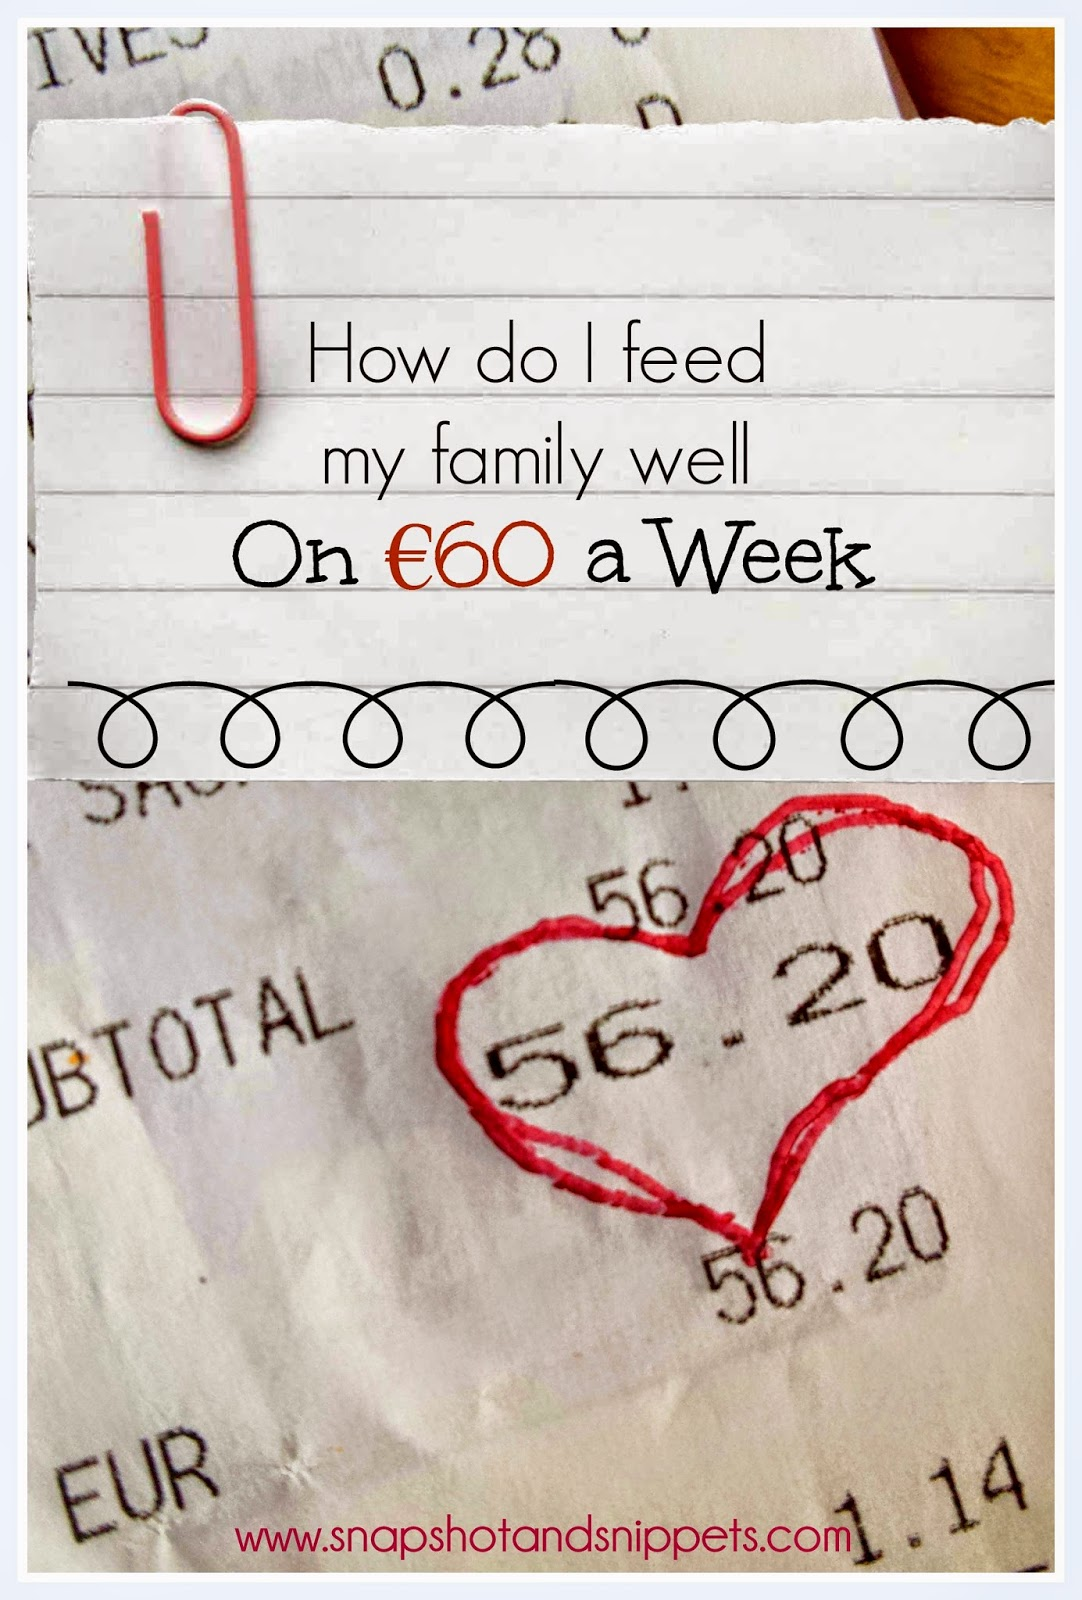 How I feed my family well on a Budget